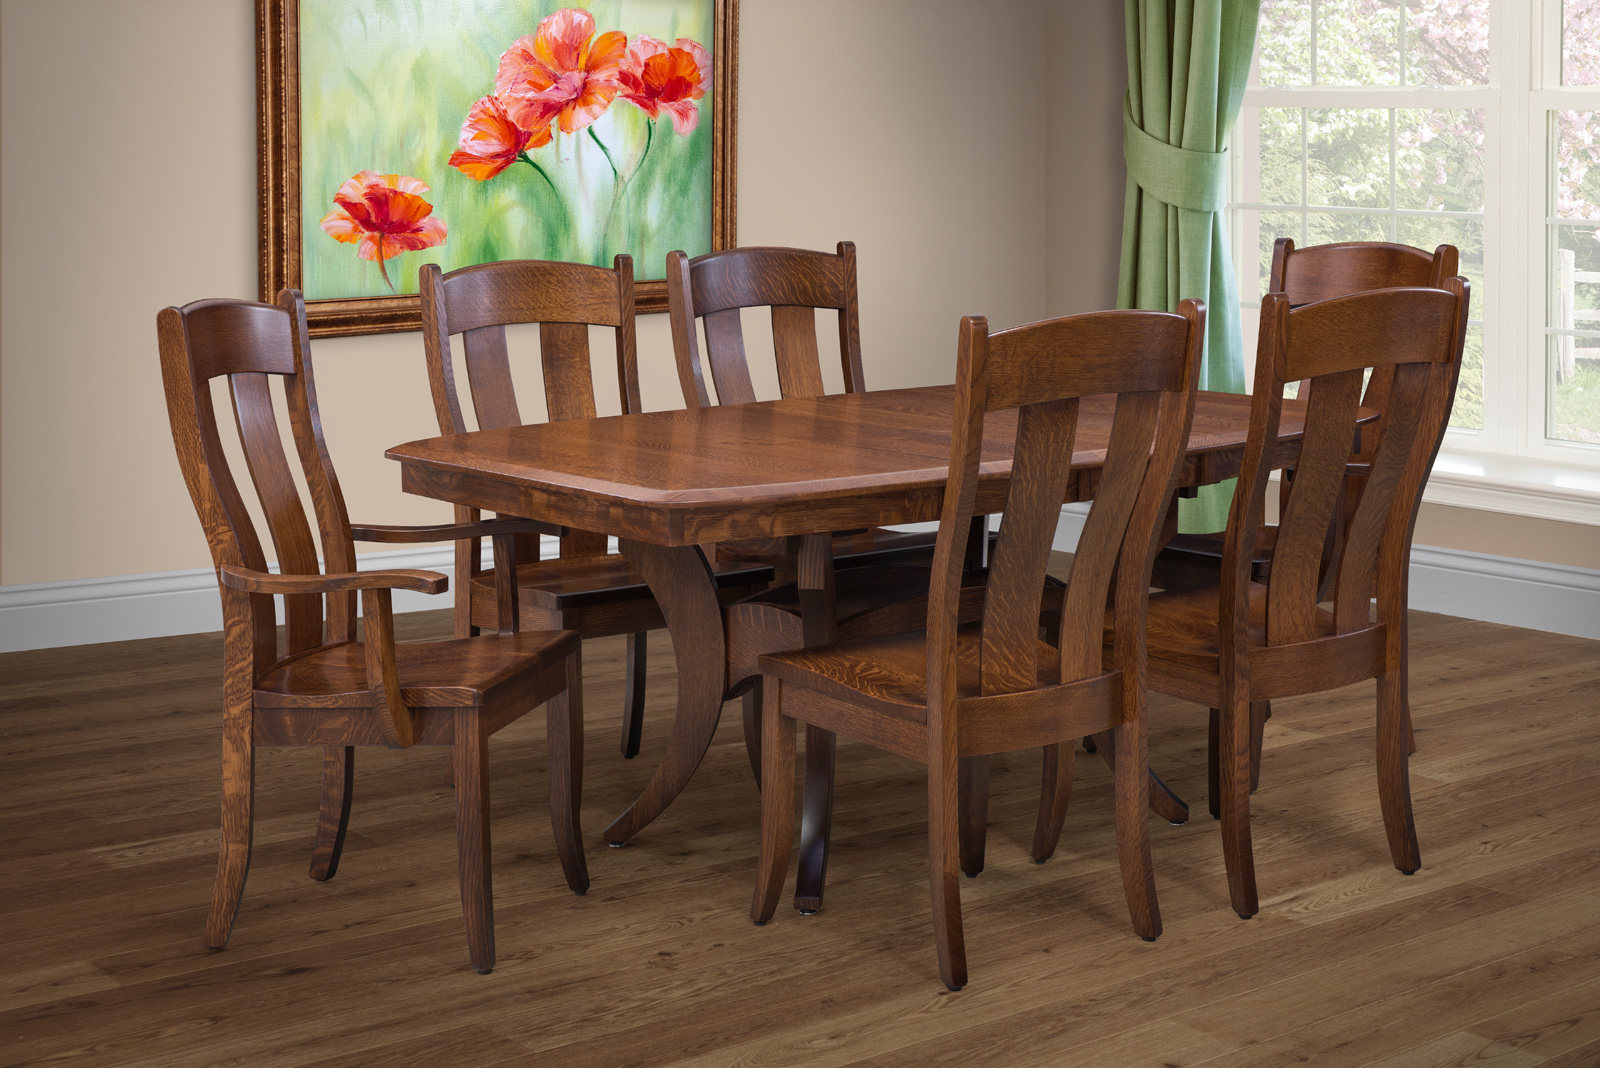 Our Fort Knox Dining Room Set Has Some Advantages That Many Other Sets Lack On Todays Market We Use American Solid Hardwoods Along With The Finest